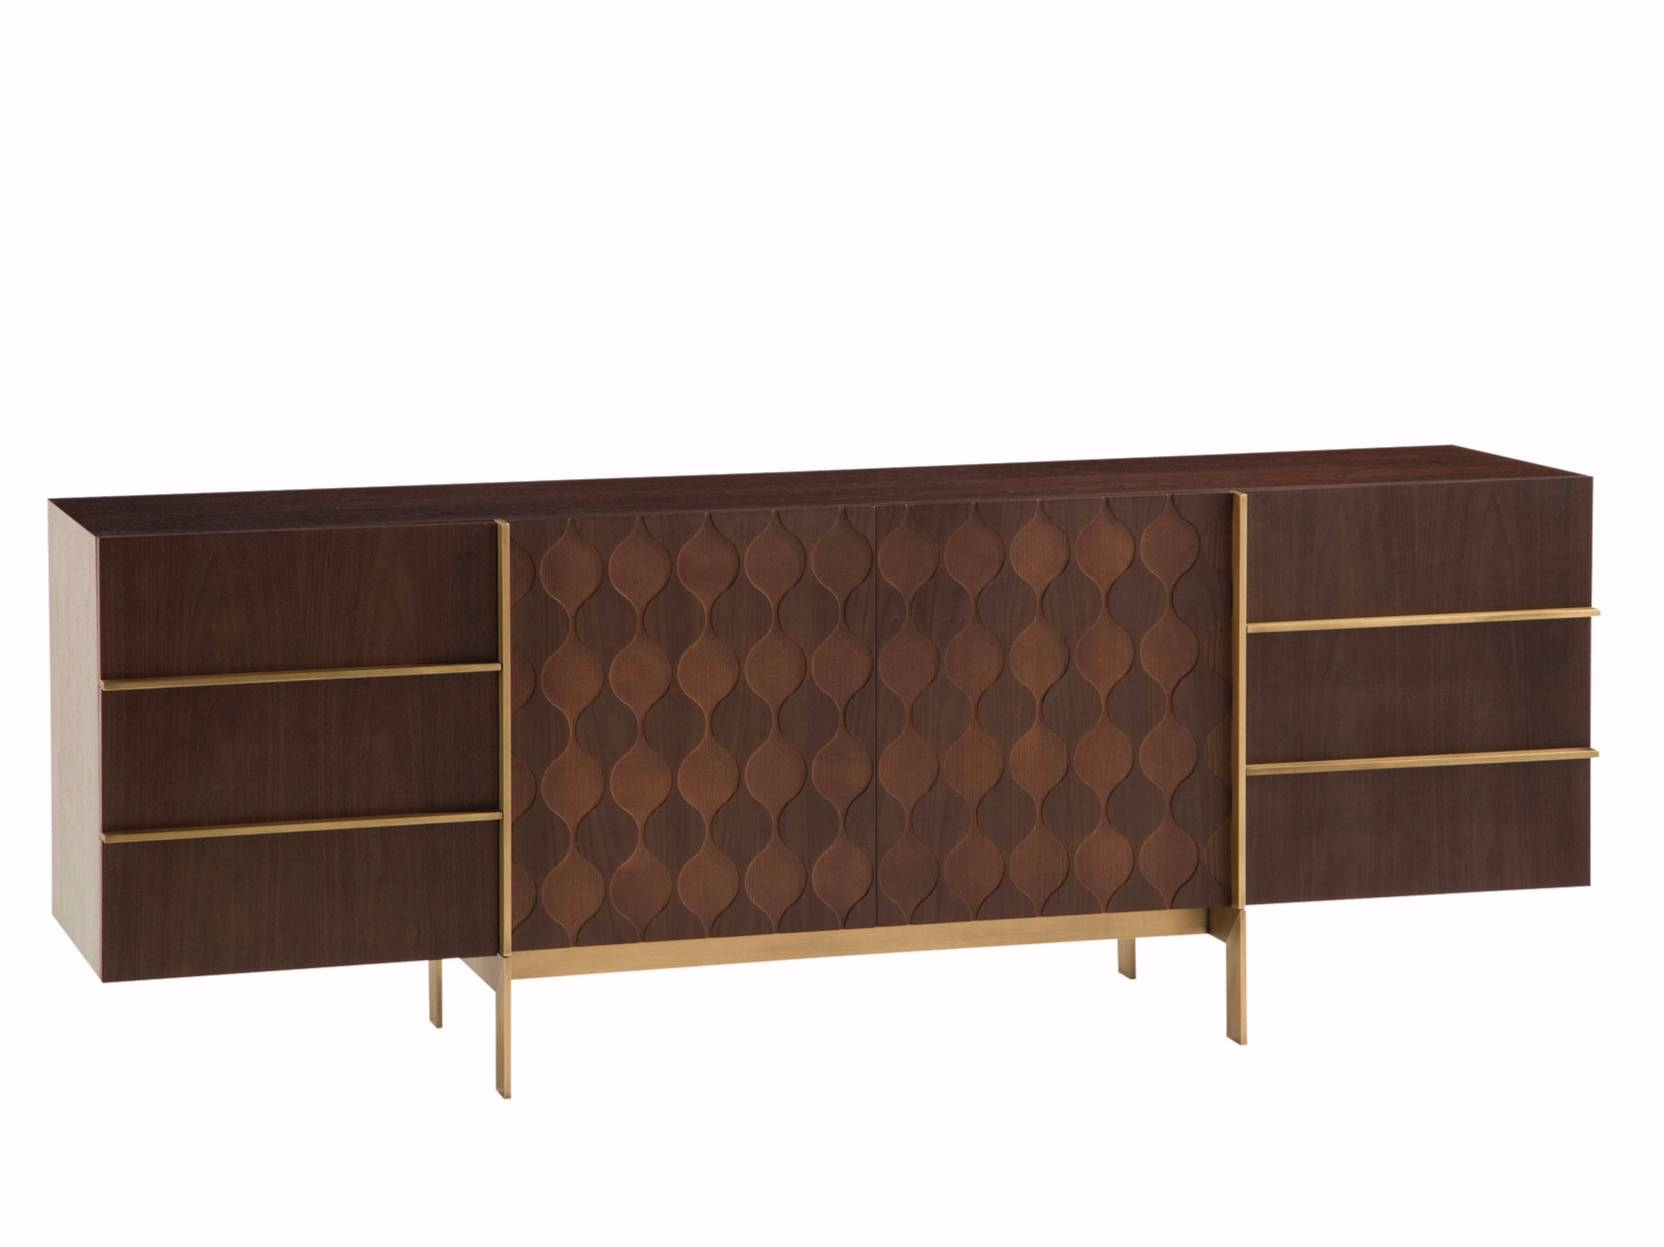 Repertoire | Sideboardroche Bobois Pertaining To Roche Bobois Sideboards (View 6 of 15)